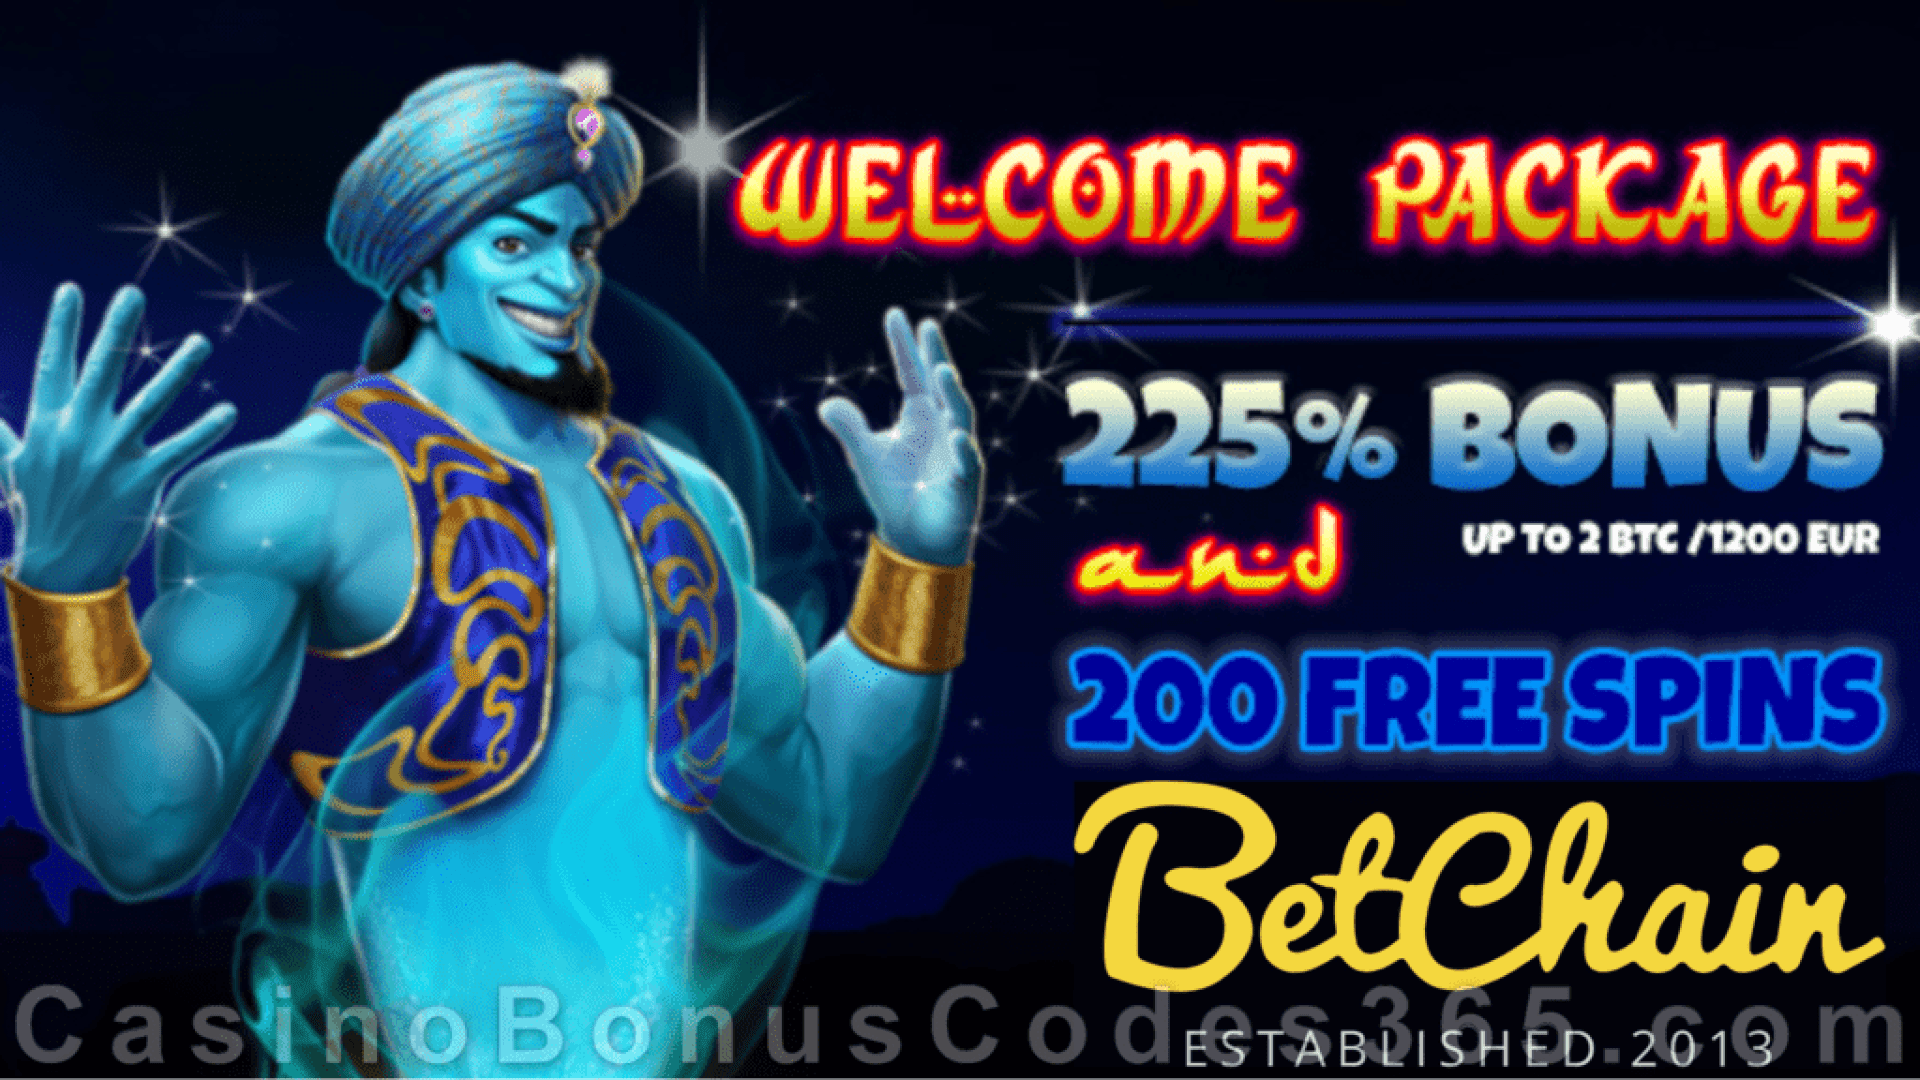 Betchain Bitcoin Casino 225% Bonus plus 200 FREE Spins Welcome Package New Crytocurrencies accepted as deposit option